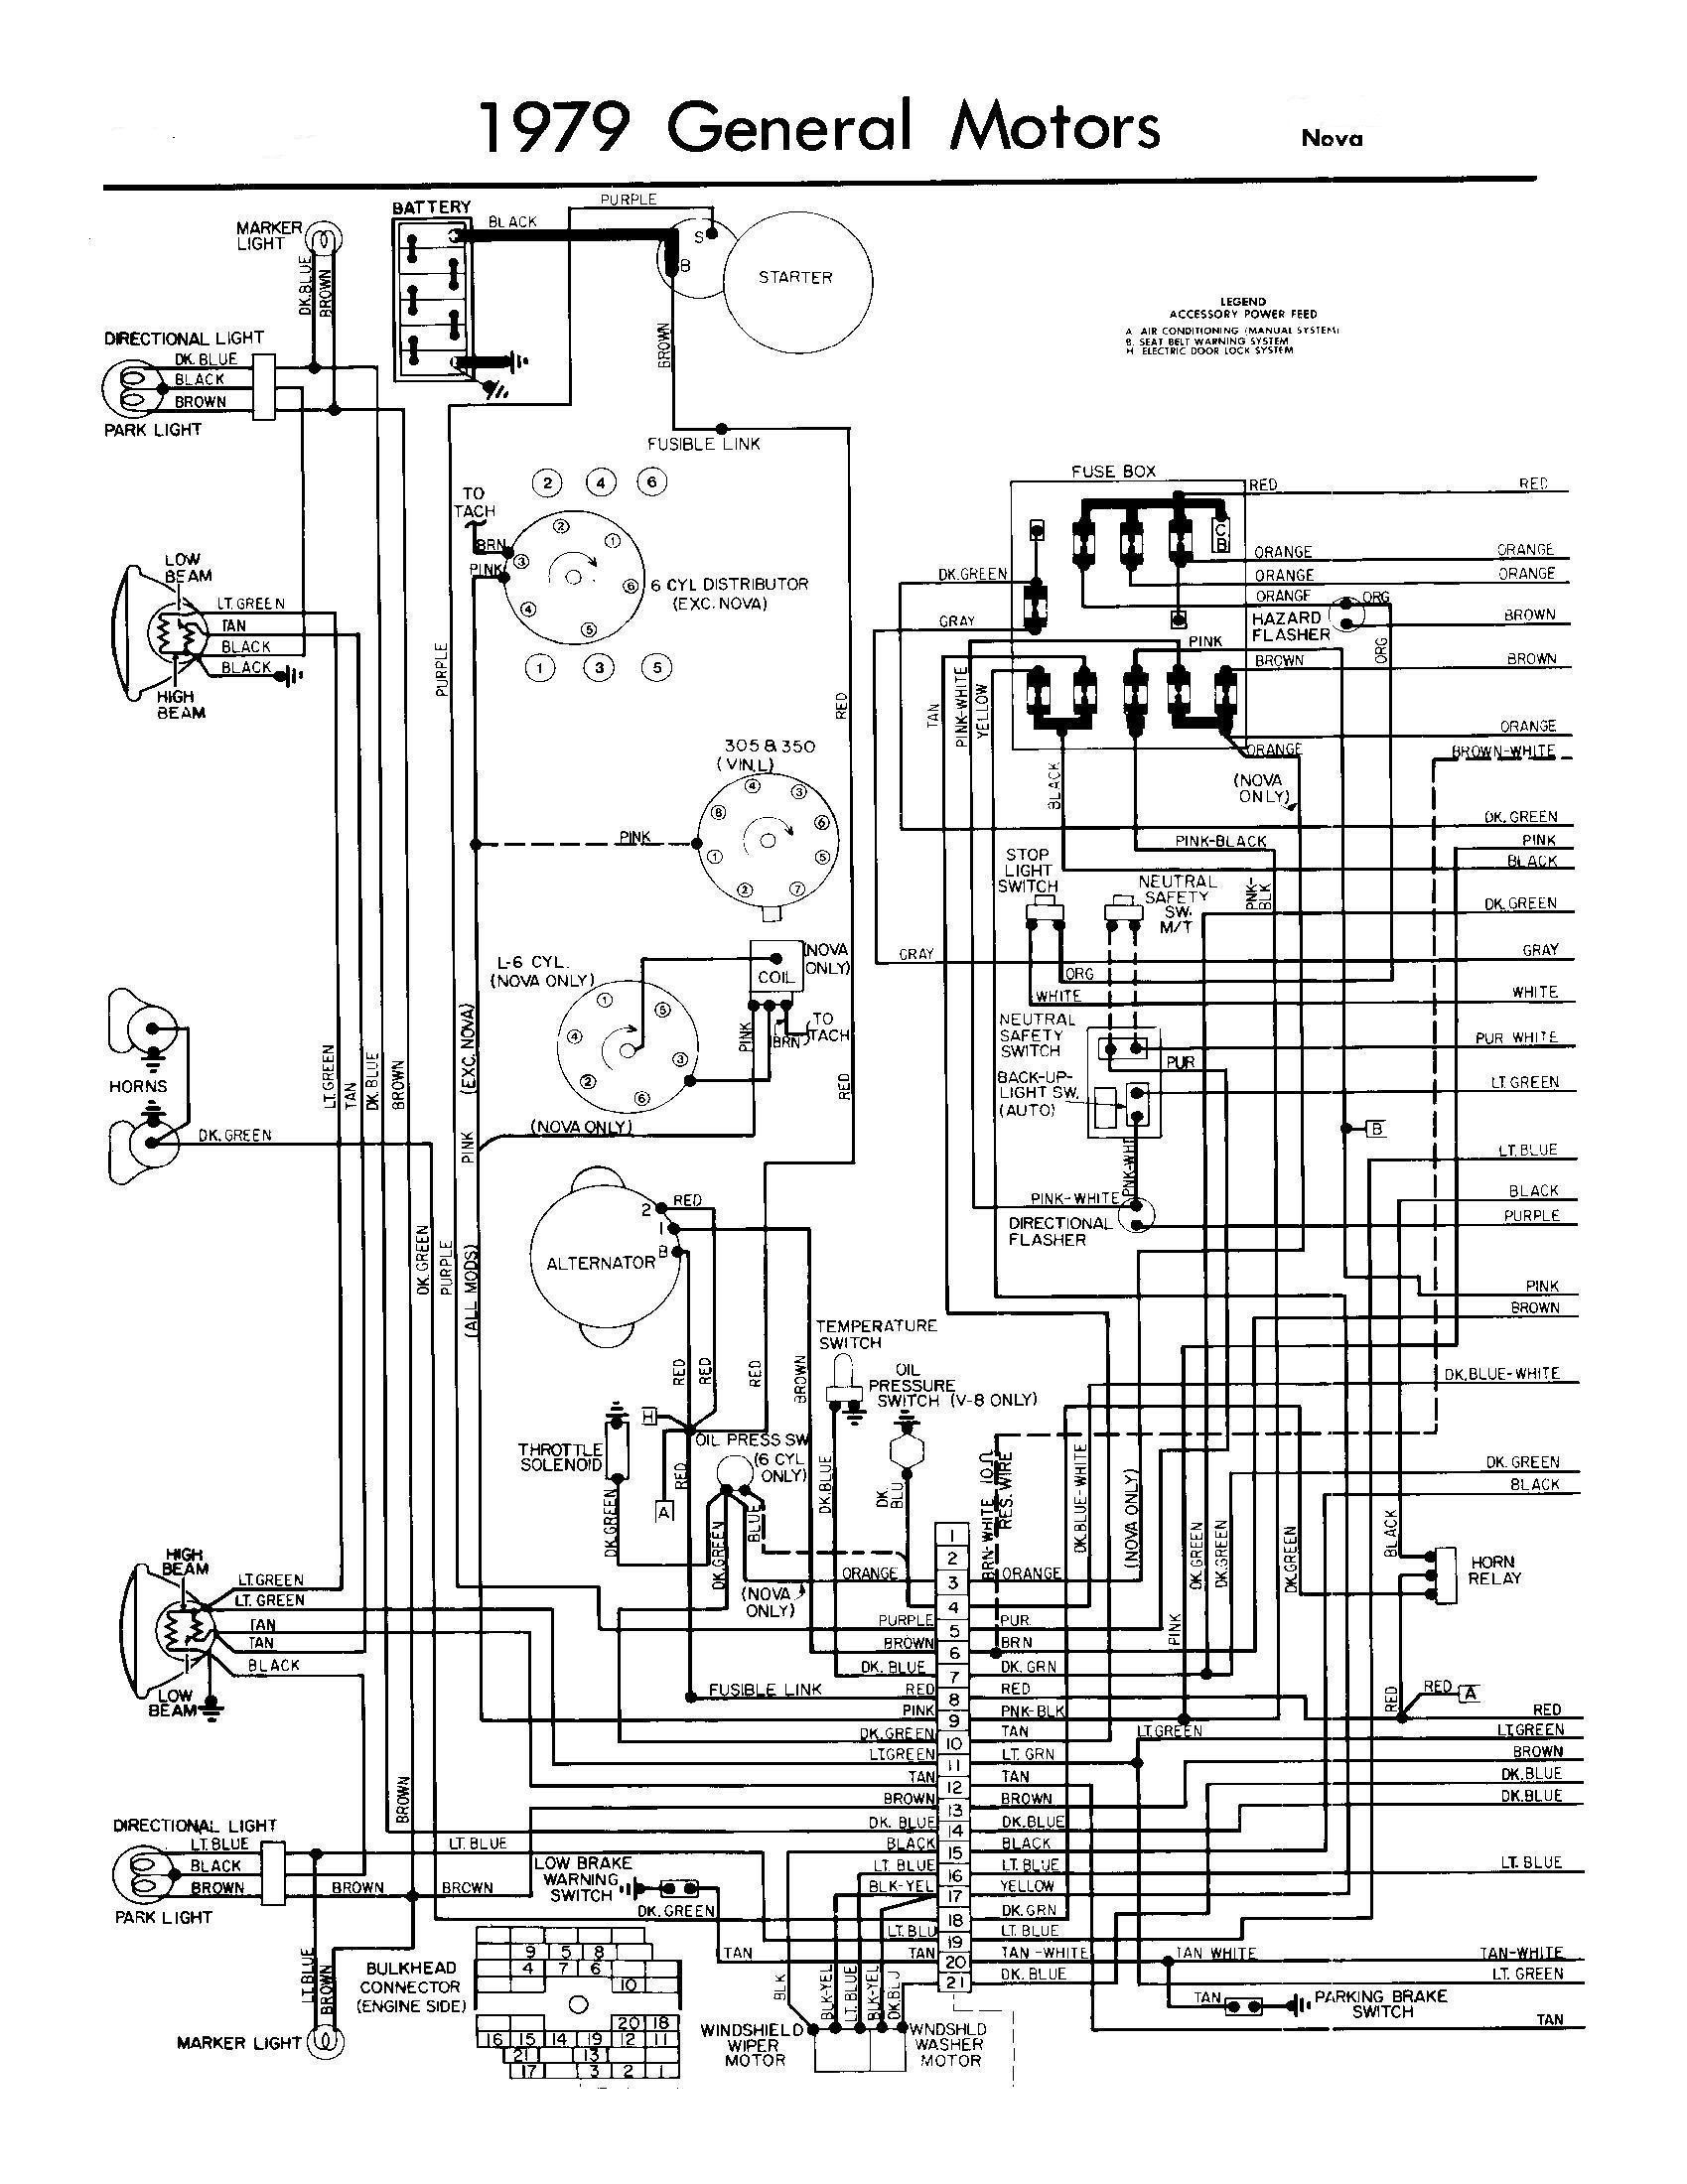 Gm Marine Ignition Wiring Diagrams - Wiring Diagram Data on capacitor discharge ignition, power diagram, headlight diagram, saab direct ignition, ignition coil, ignition starter, ignition system, delco ignition system, ignition filter diagram, fuel diagram, air-fuel ratio meter, coil diagram, inductive discharge ignition, electronic ignition diagram, model t ignition diagram, ignition magneto, overhead camshaft, starter diagram, timing belt, motor diagram, ignition distributor diagram, ignition wire, ignition module diagram, ignition switch, ignition fuse, ignition timing, oil pump, ignition cable, circuit diagram,